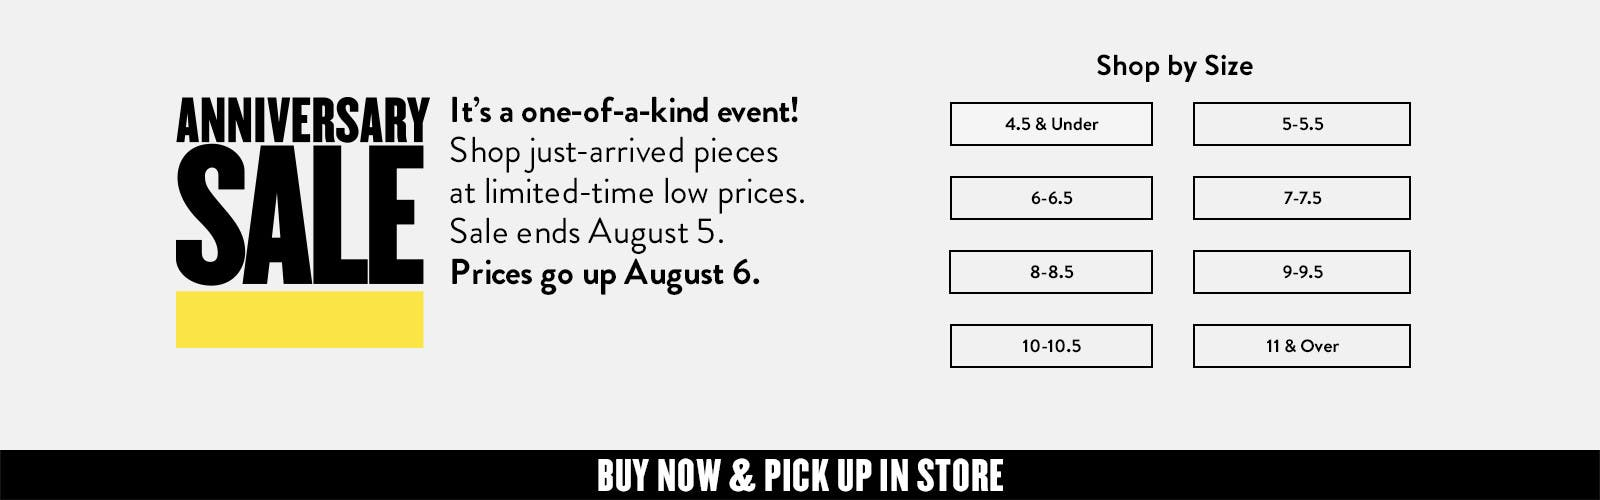 Anniversary Sale: just-arrived pieces at limited-time low prices, through August 5.